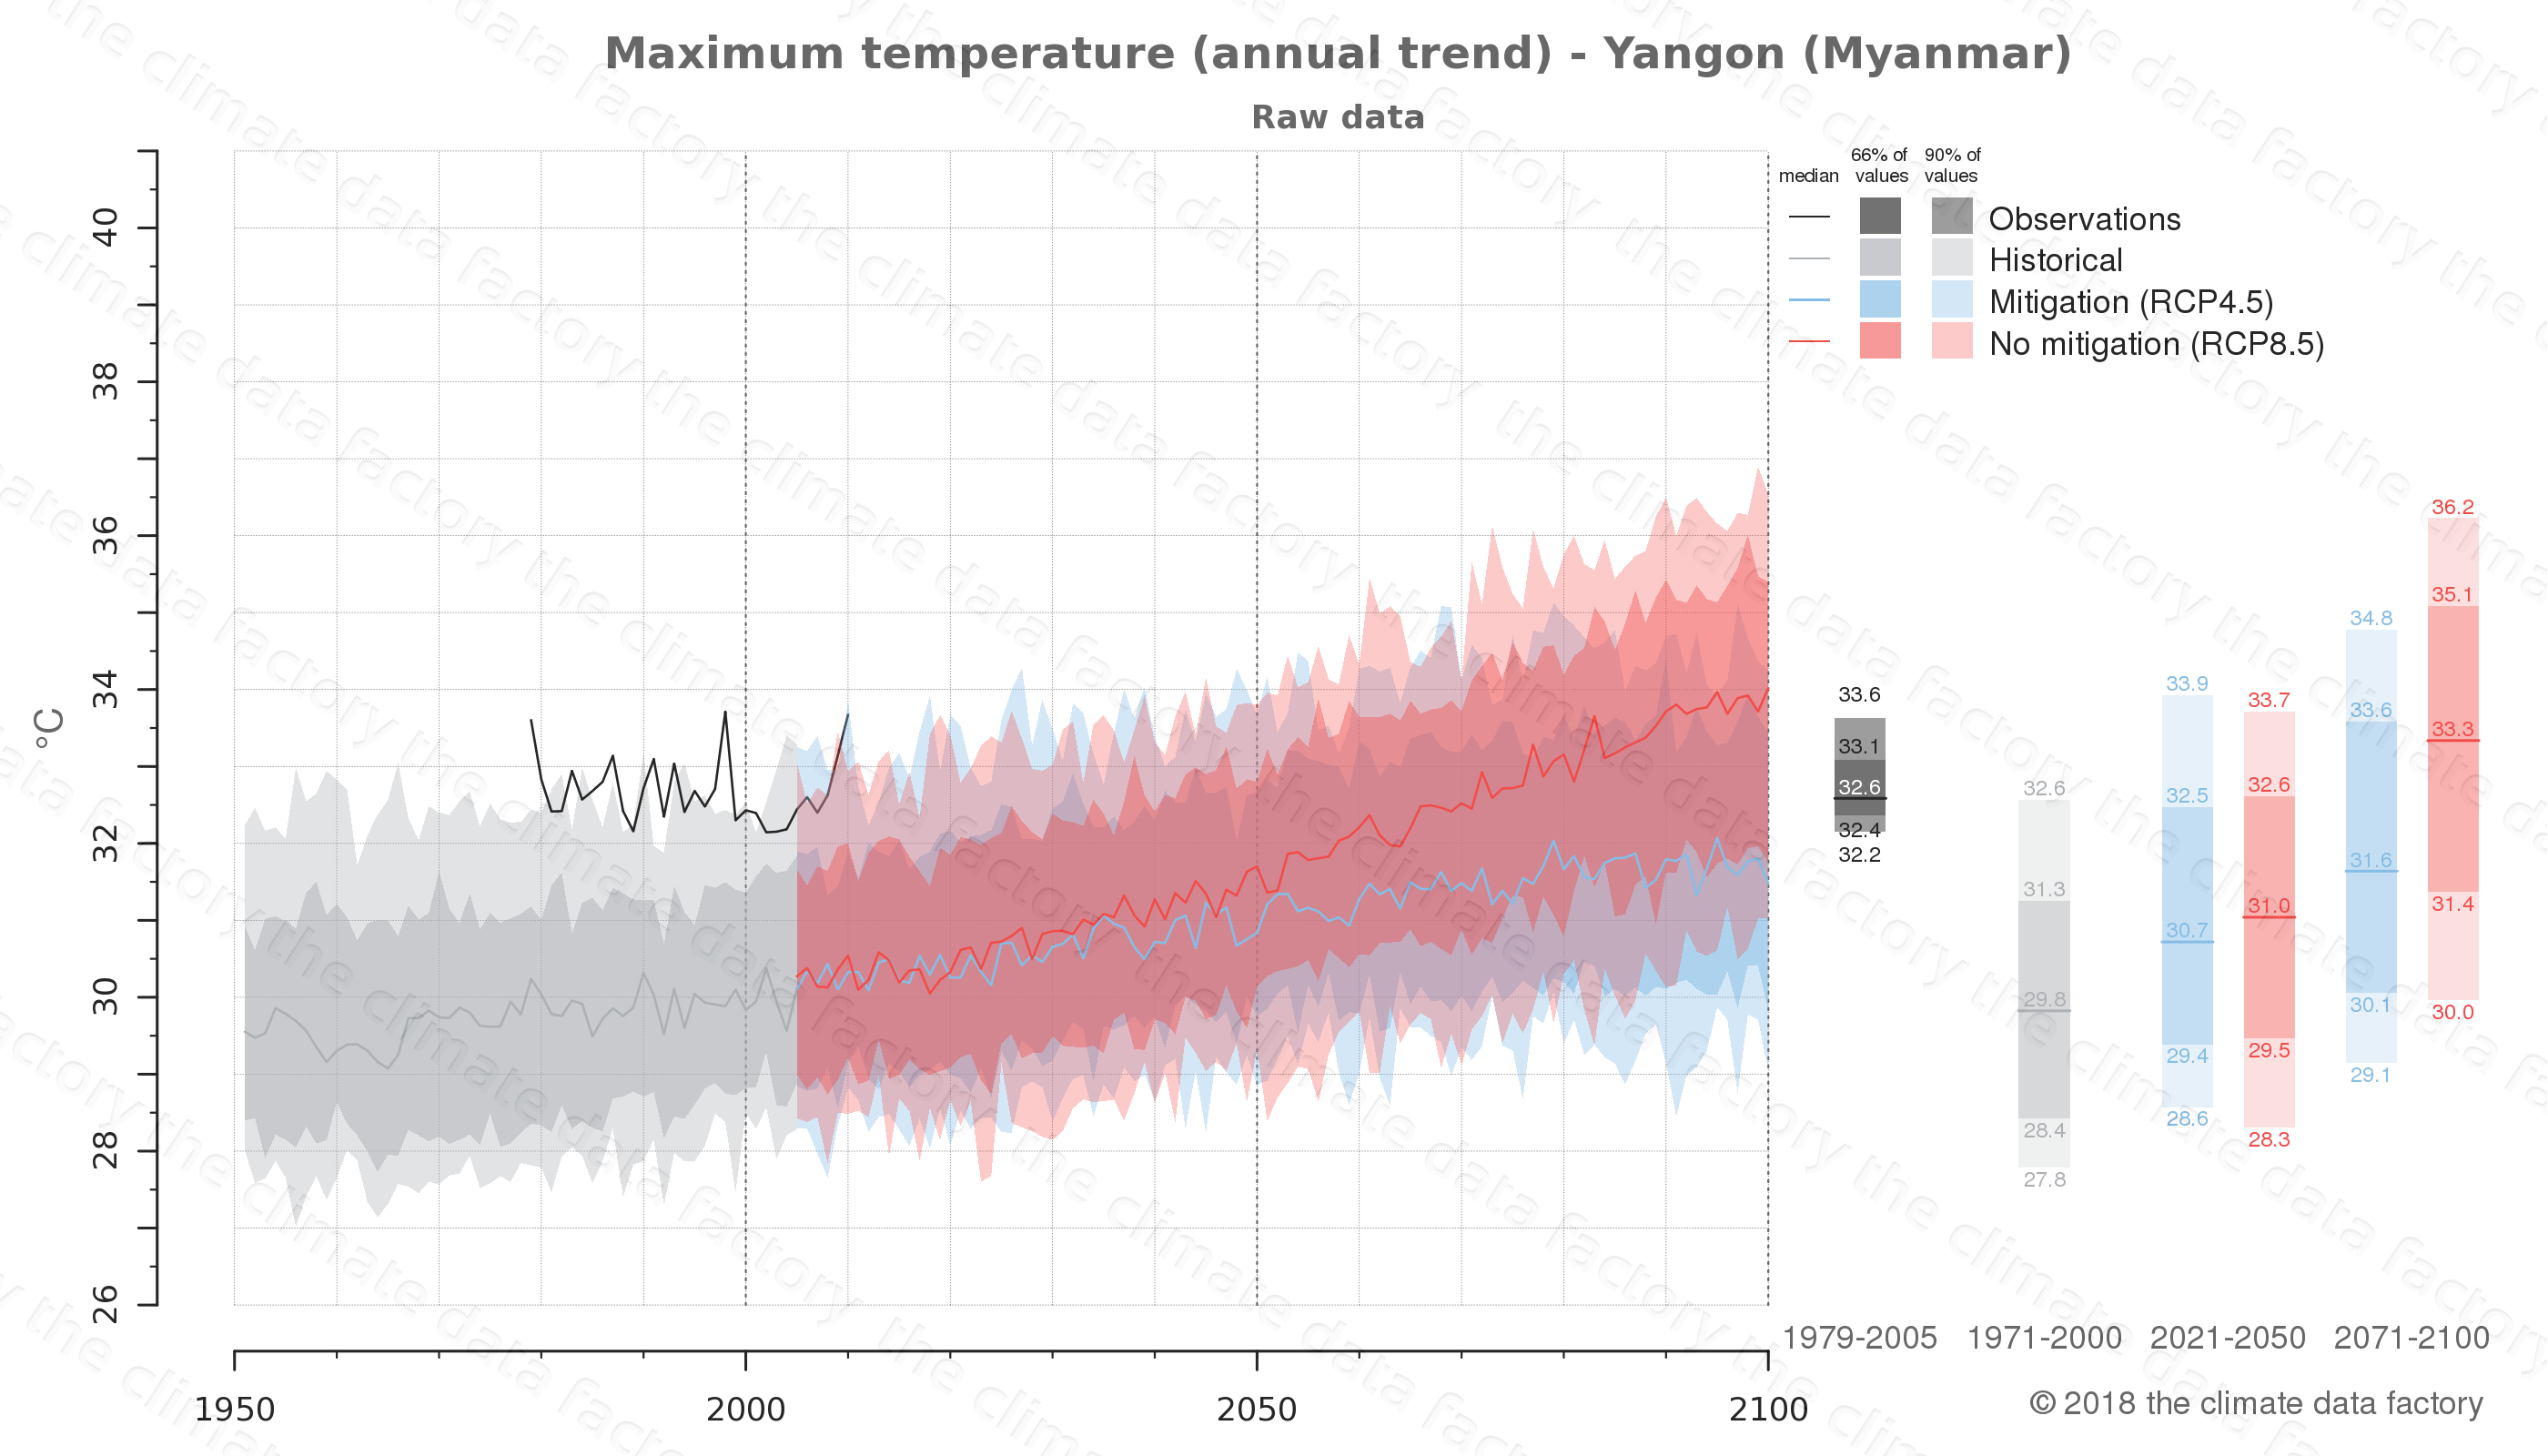 climate change data policy adaptation climate graph city data maximum-temperature yangon myanmar